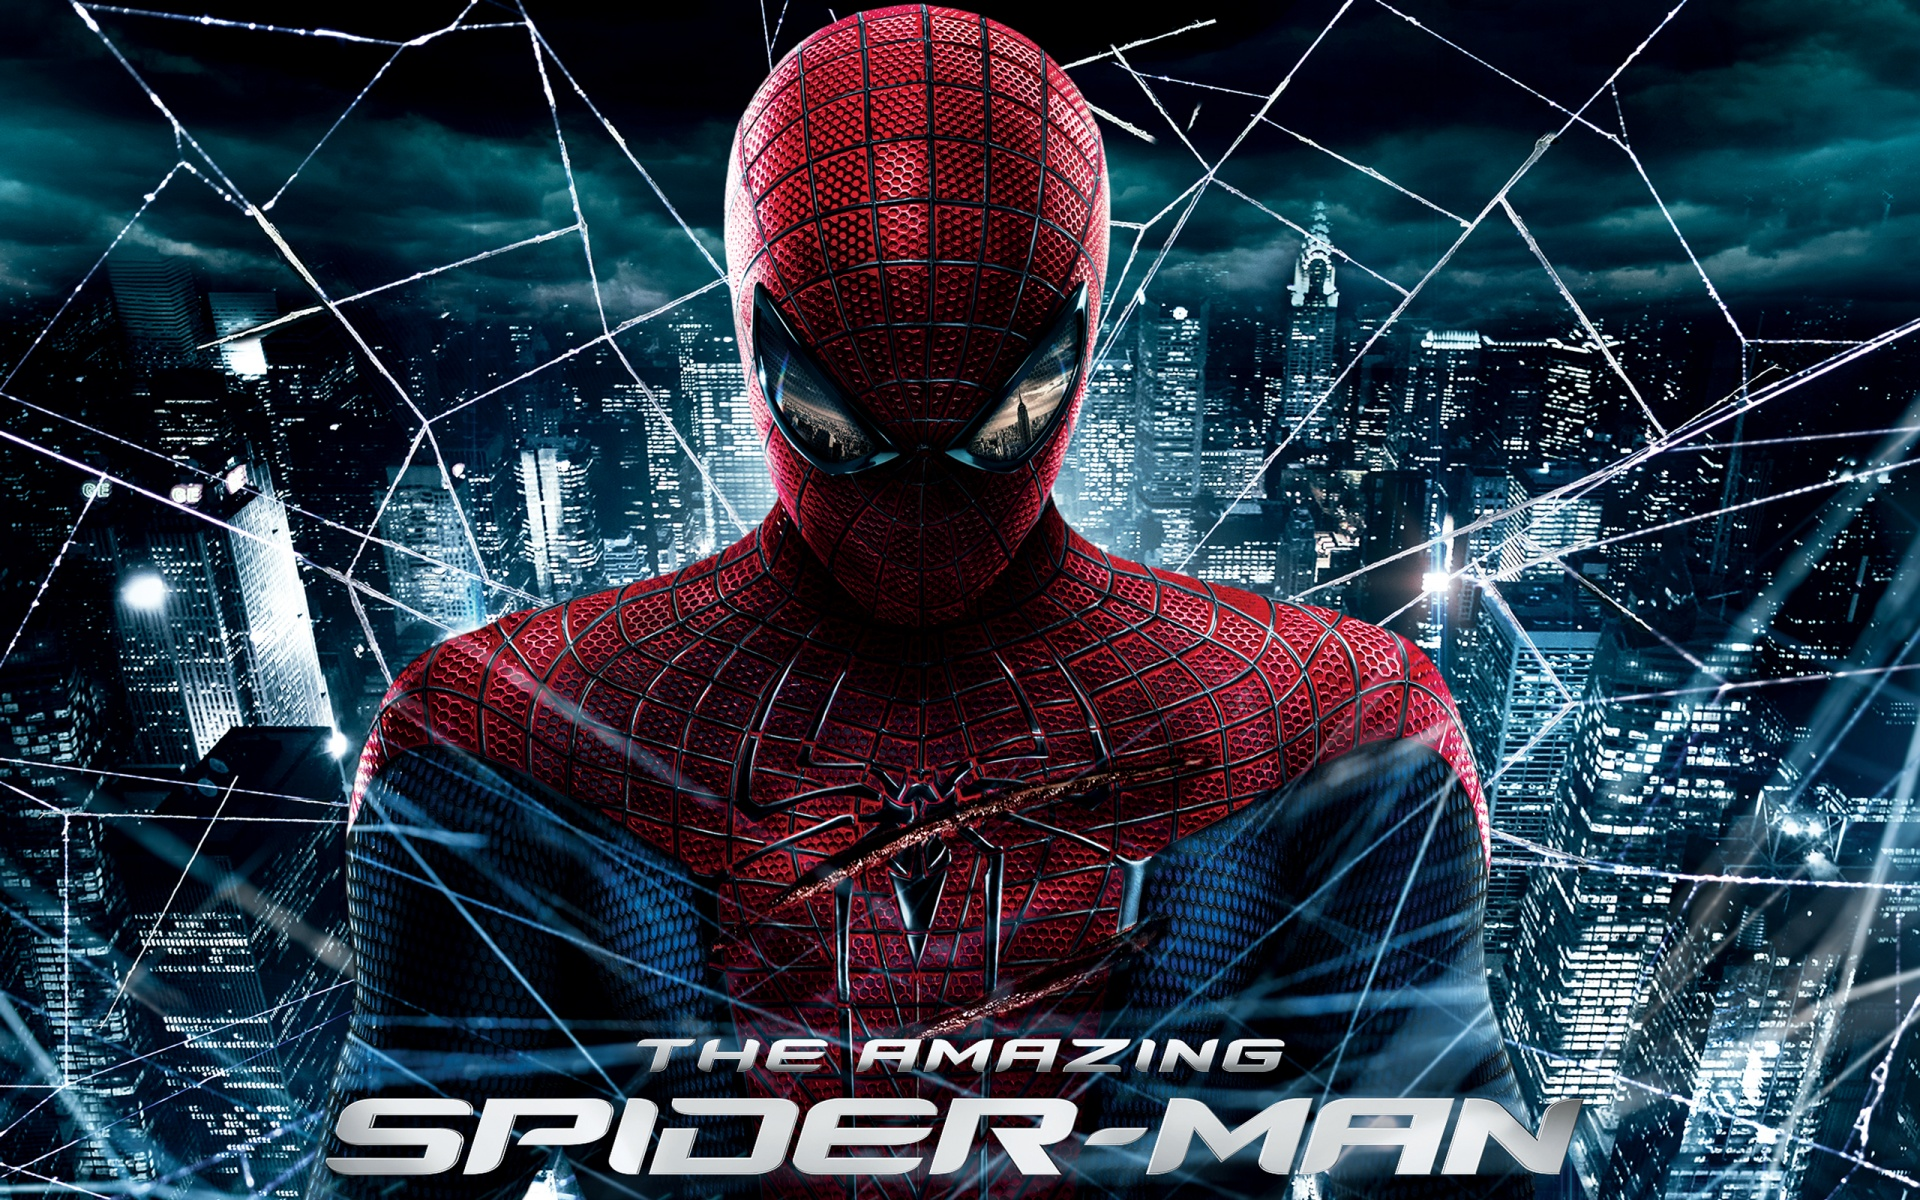 High Resolution Movie The Amazing Spiderman Wallpaper HD 5 Full ...